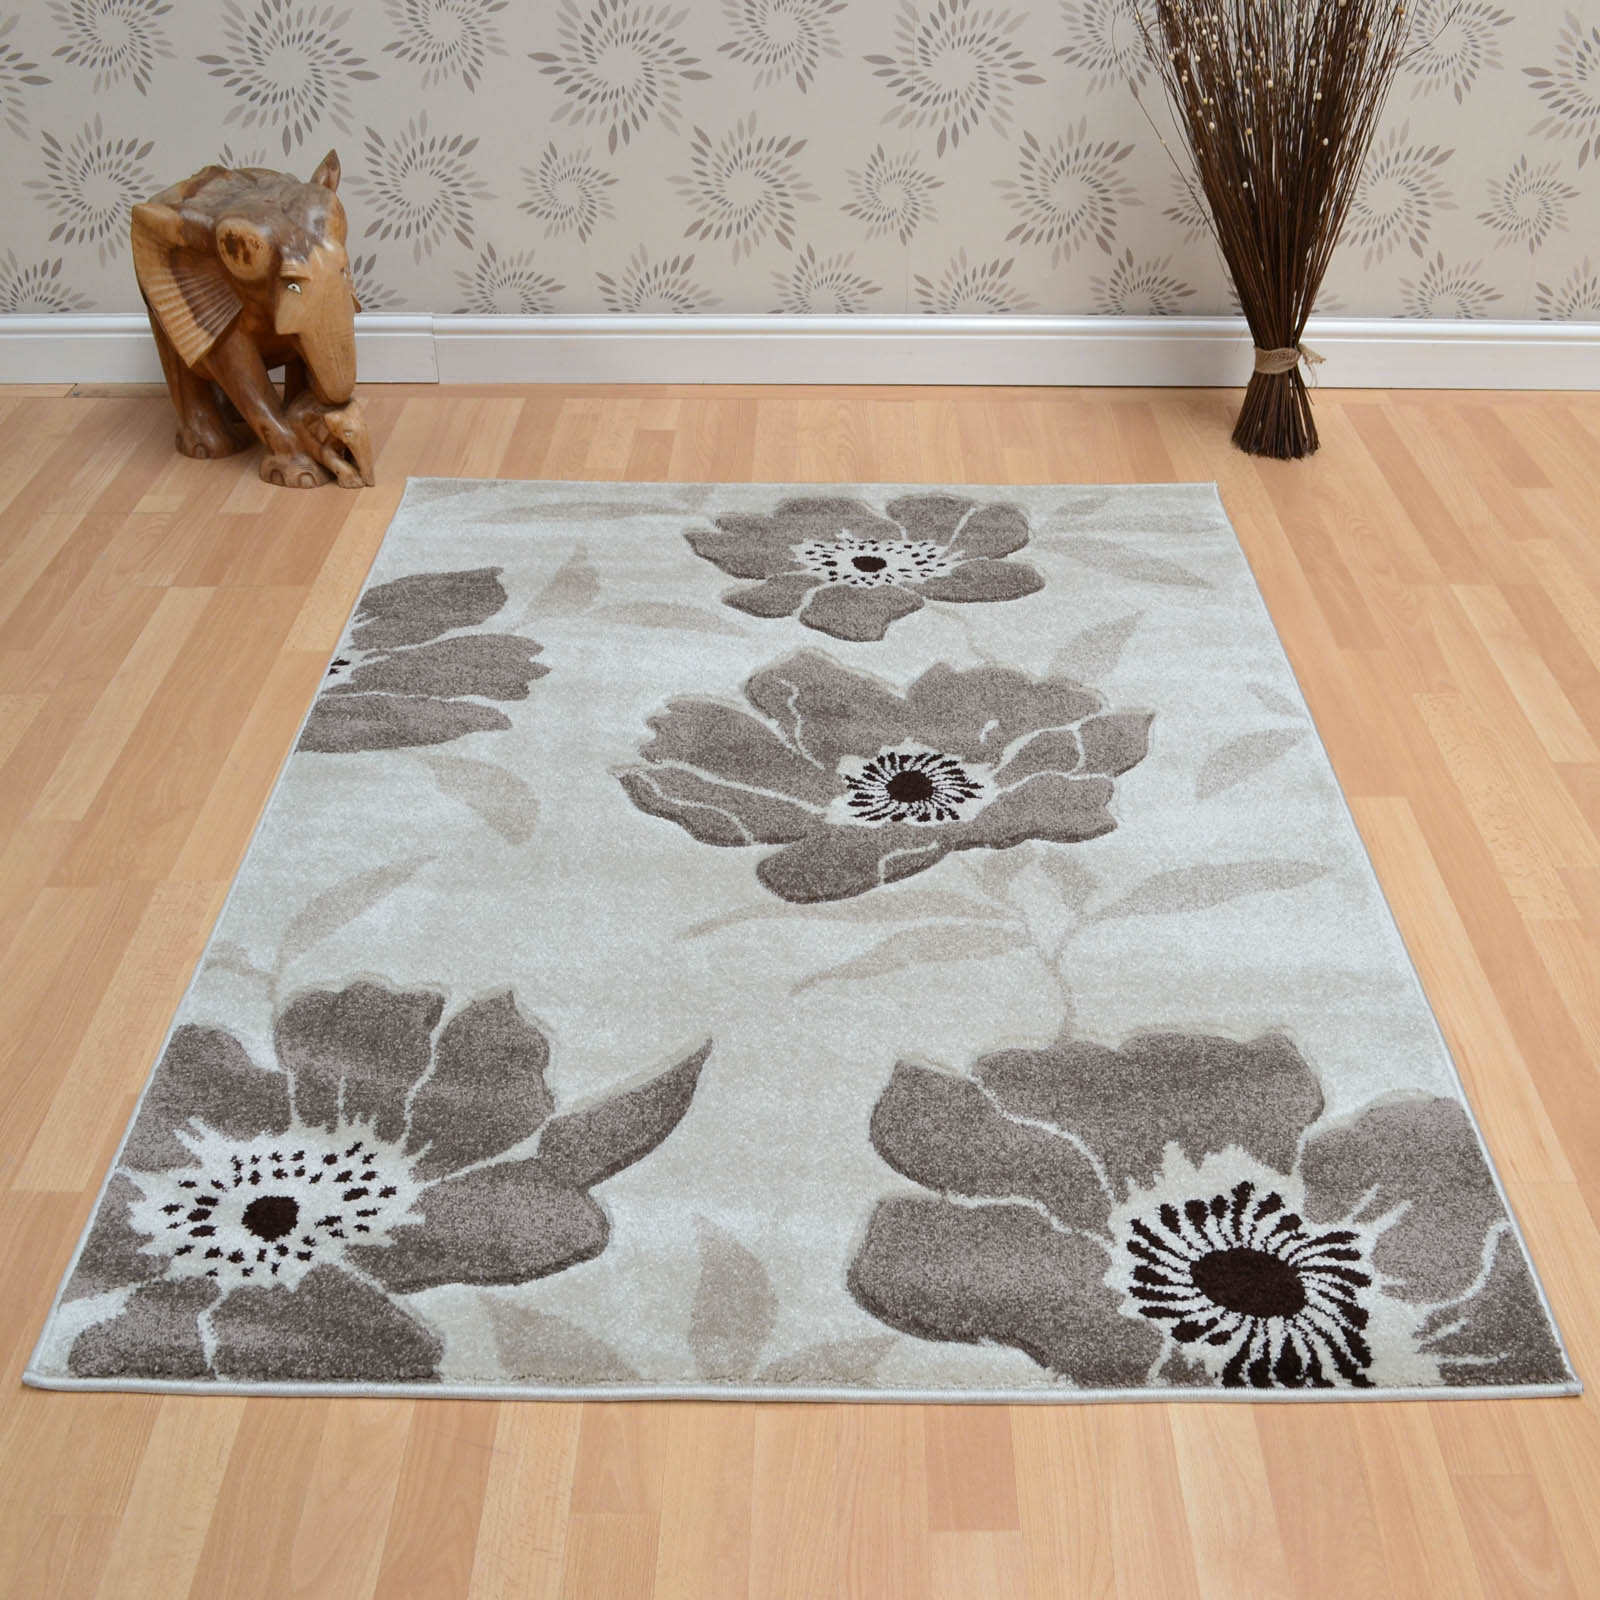 Vogue Poppies Rugs VG39 in Grey